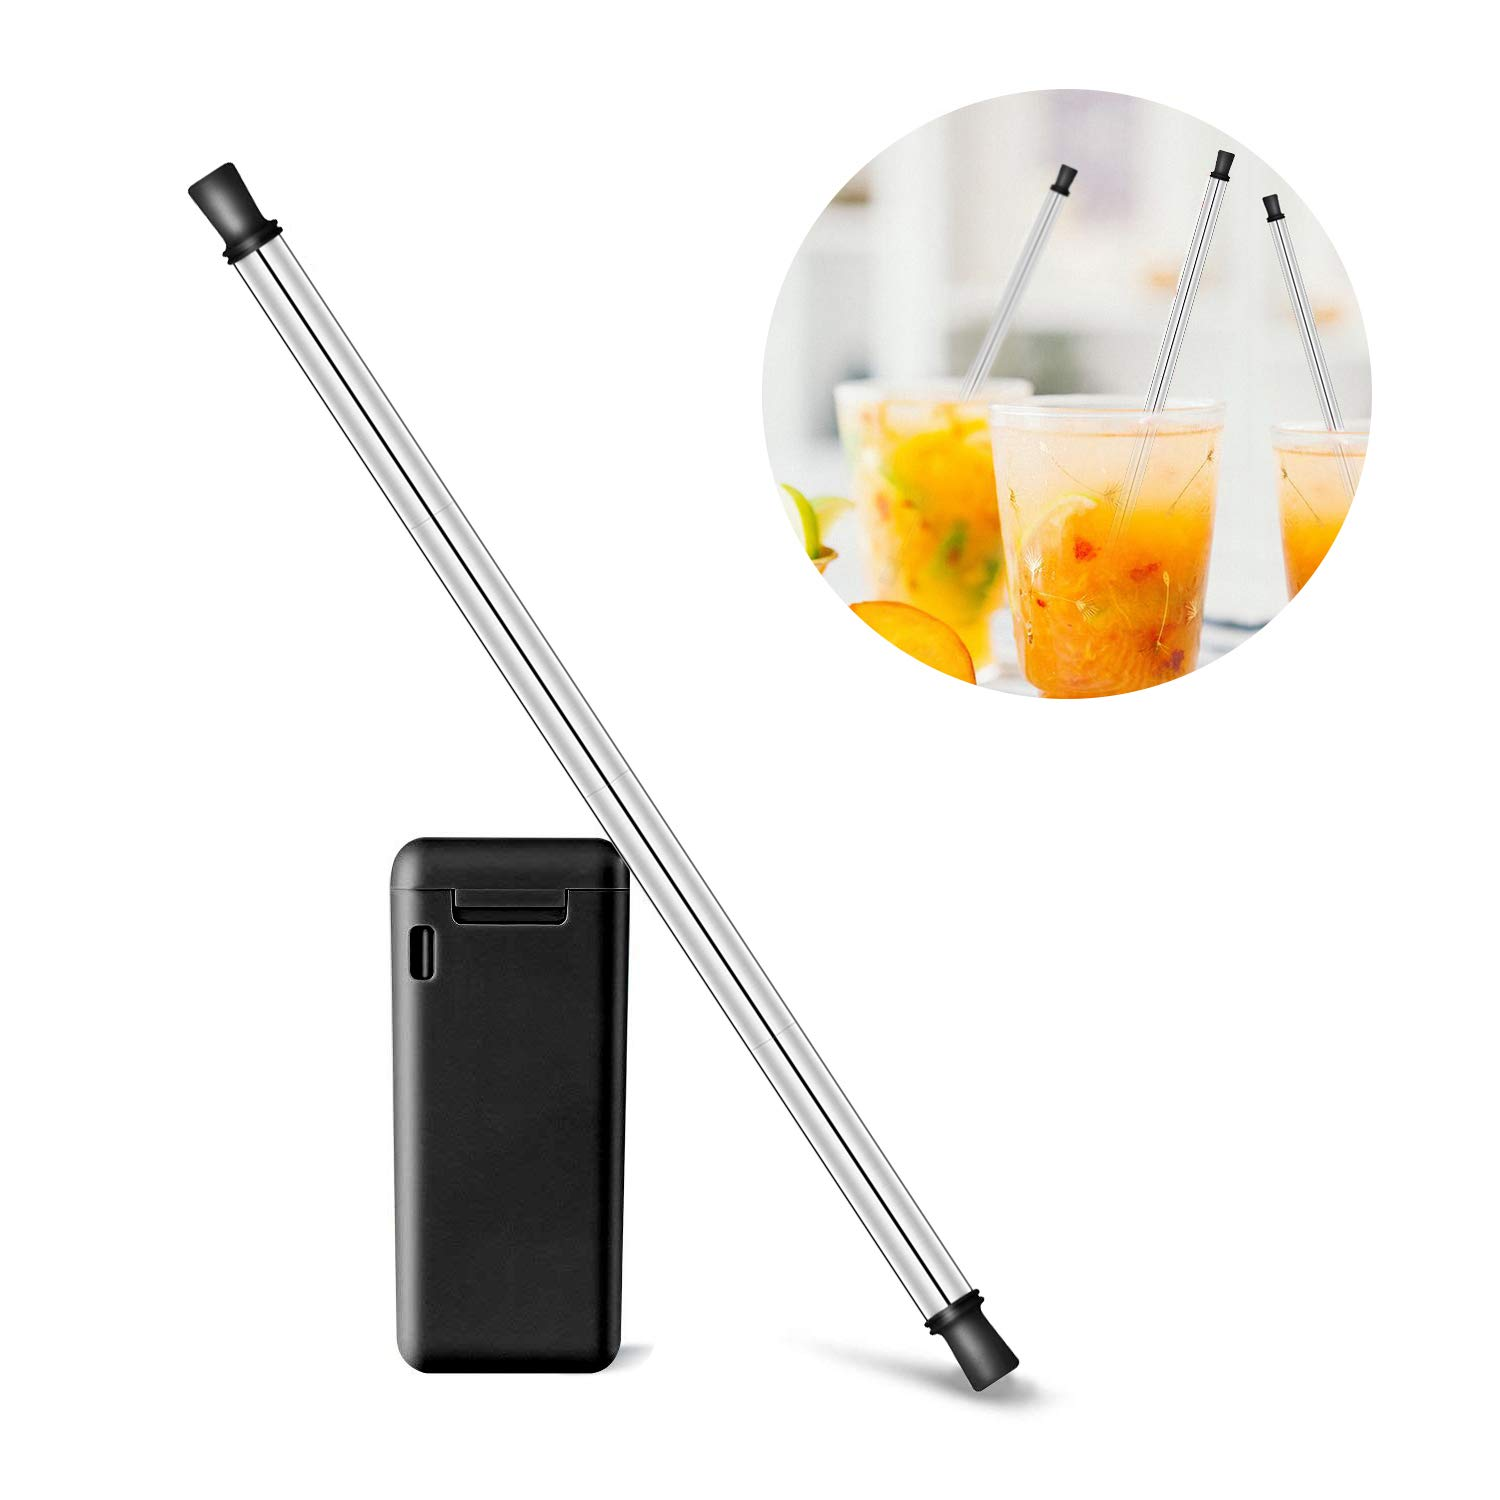 Collapsible Reusable Straw, Agde Folding Straw Stainless Steel Metal Drinking Straw Portable Silicone Tip Final Straw BPA Free with Keychain Case Magnetic Lid Cleaning Brush For Travel and Household